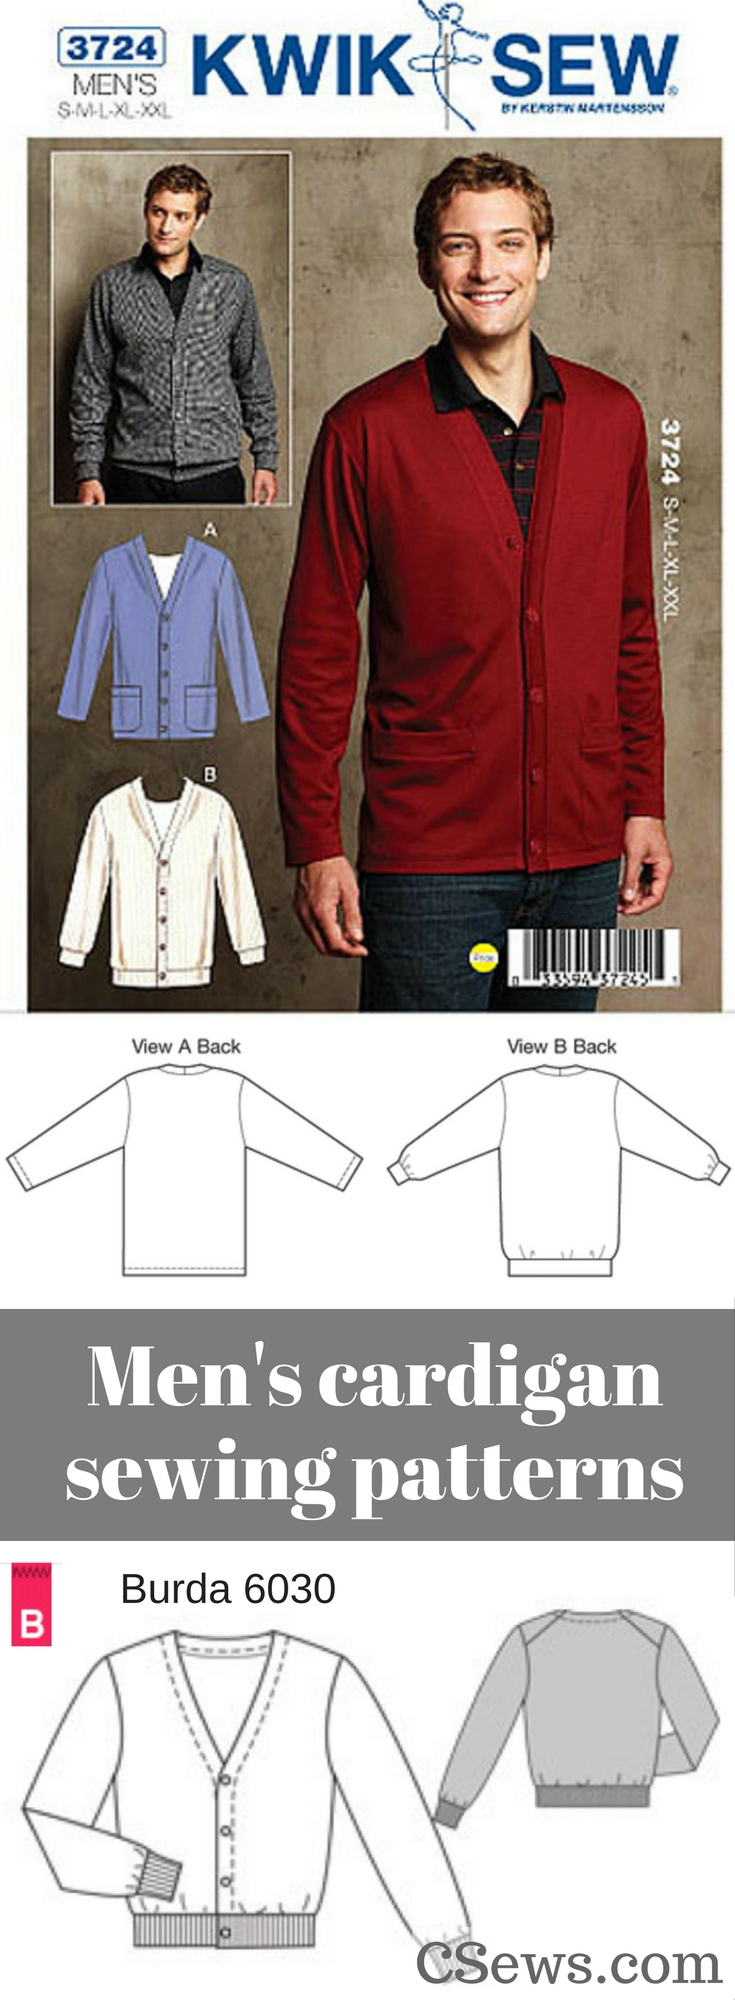 Men's cardigans patterns - Kwik Sew 3724 and Burda 6030 | menswear | sewing patterns